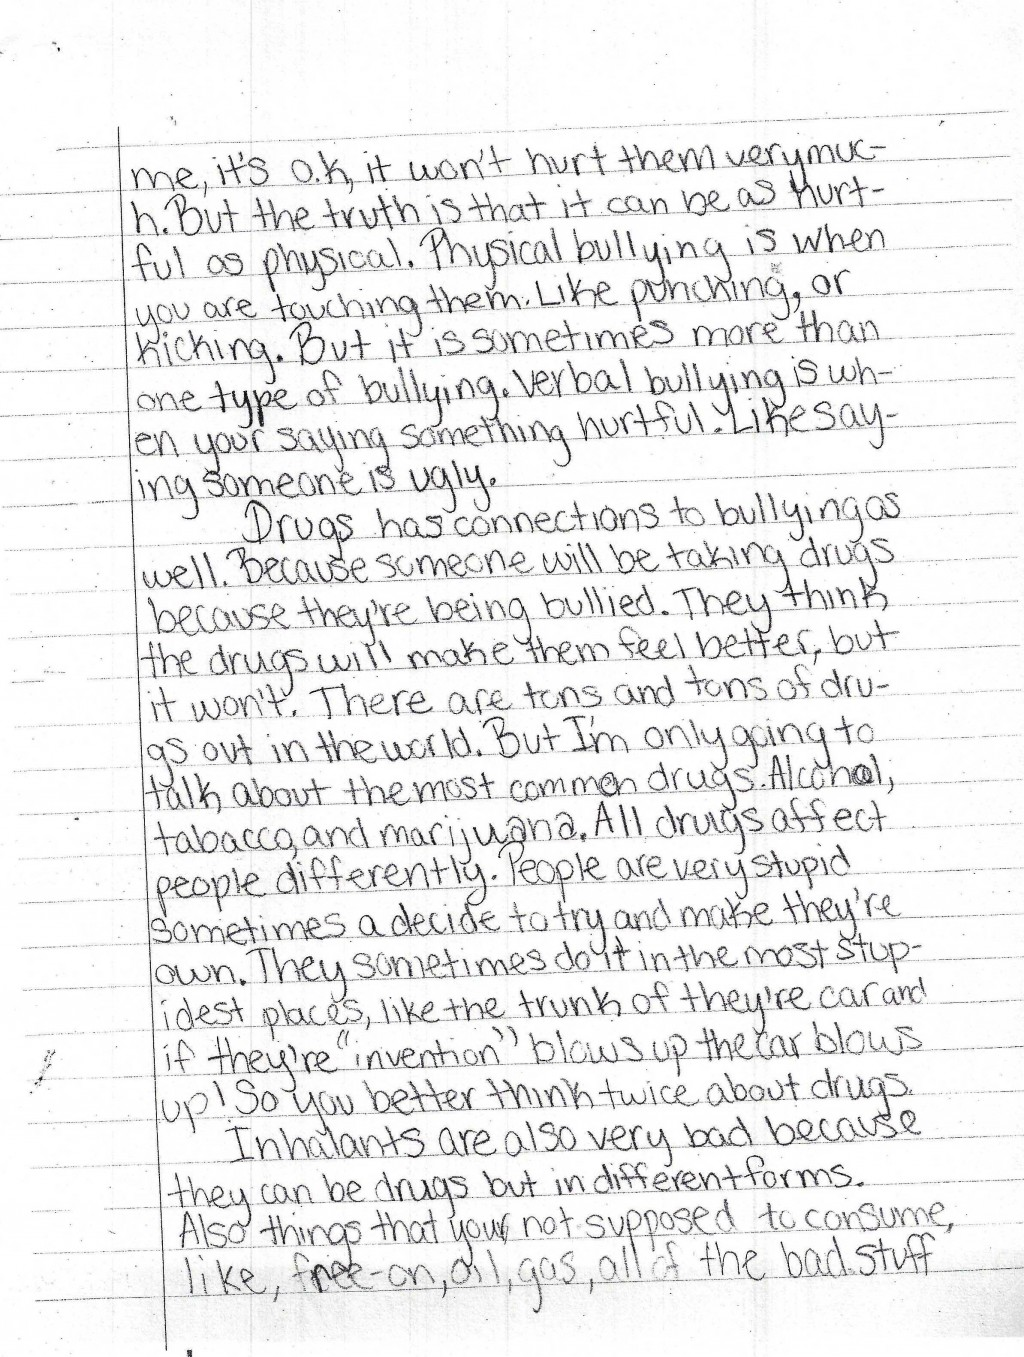 007 Harris Page2 0 Essay Example On Amazing Bullying The Cause And Effect In School Of Cyberbullying Large